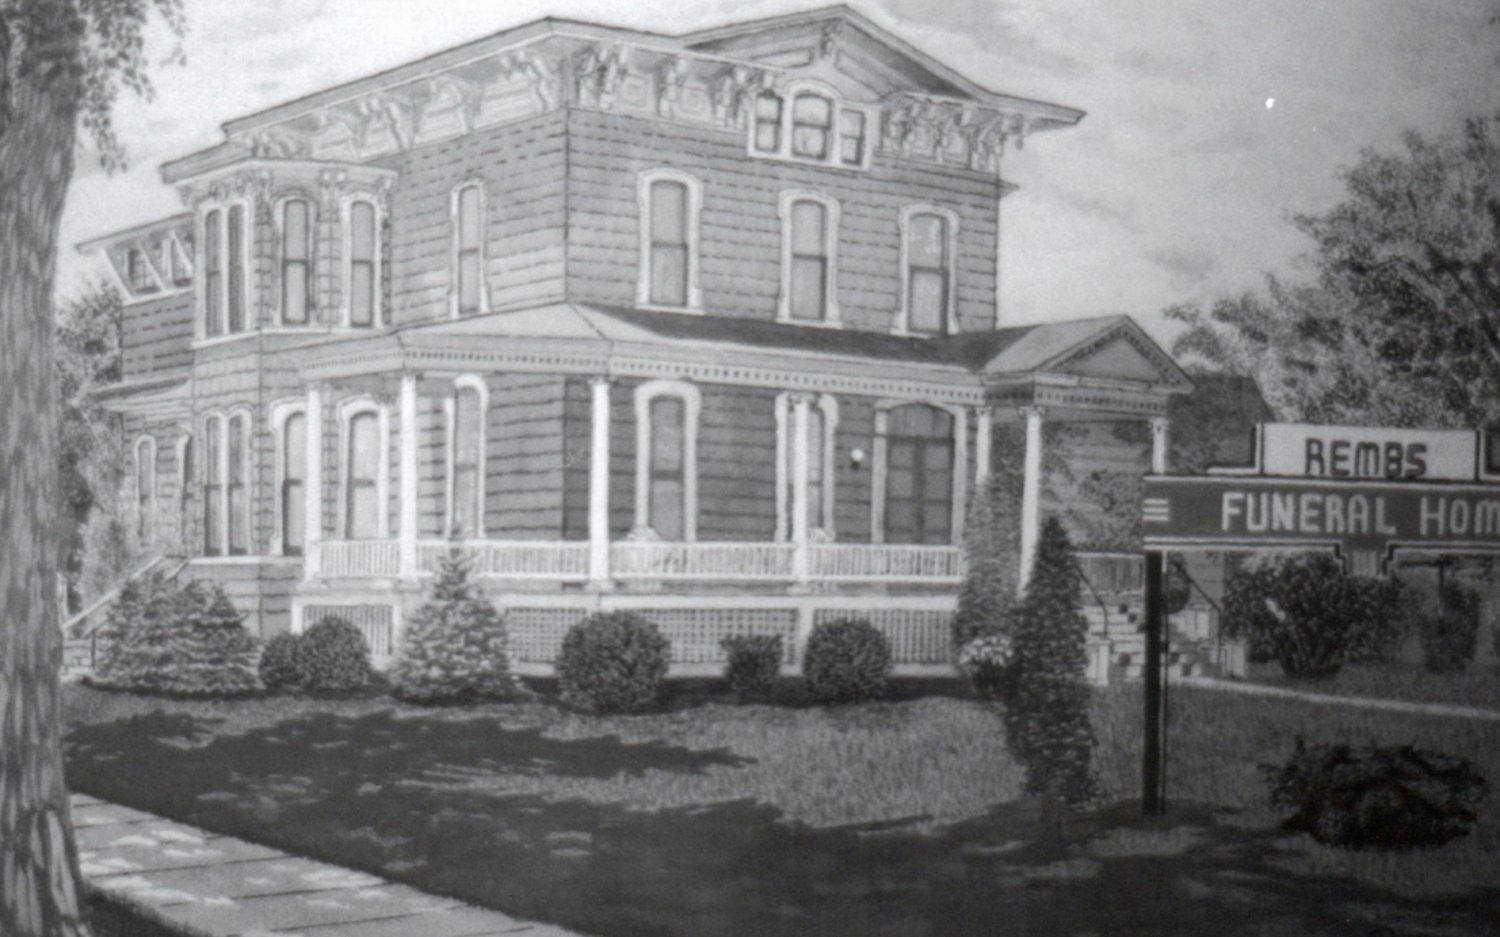 The company of Rembs, Baer, and Lange opened a state-of-the-art funeral home on the corner of Fourth Street and Chestnut Avenue following a complete remodeling of what was once the residence of Frank Upham in 1937.